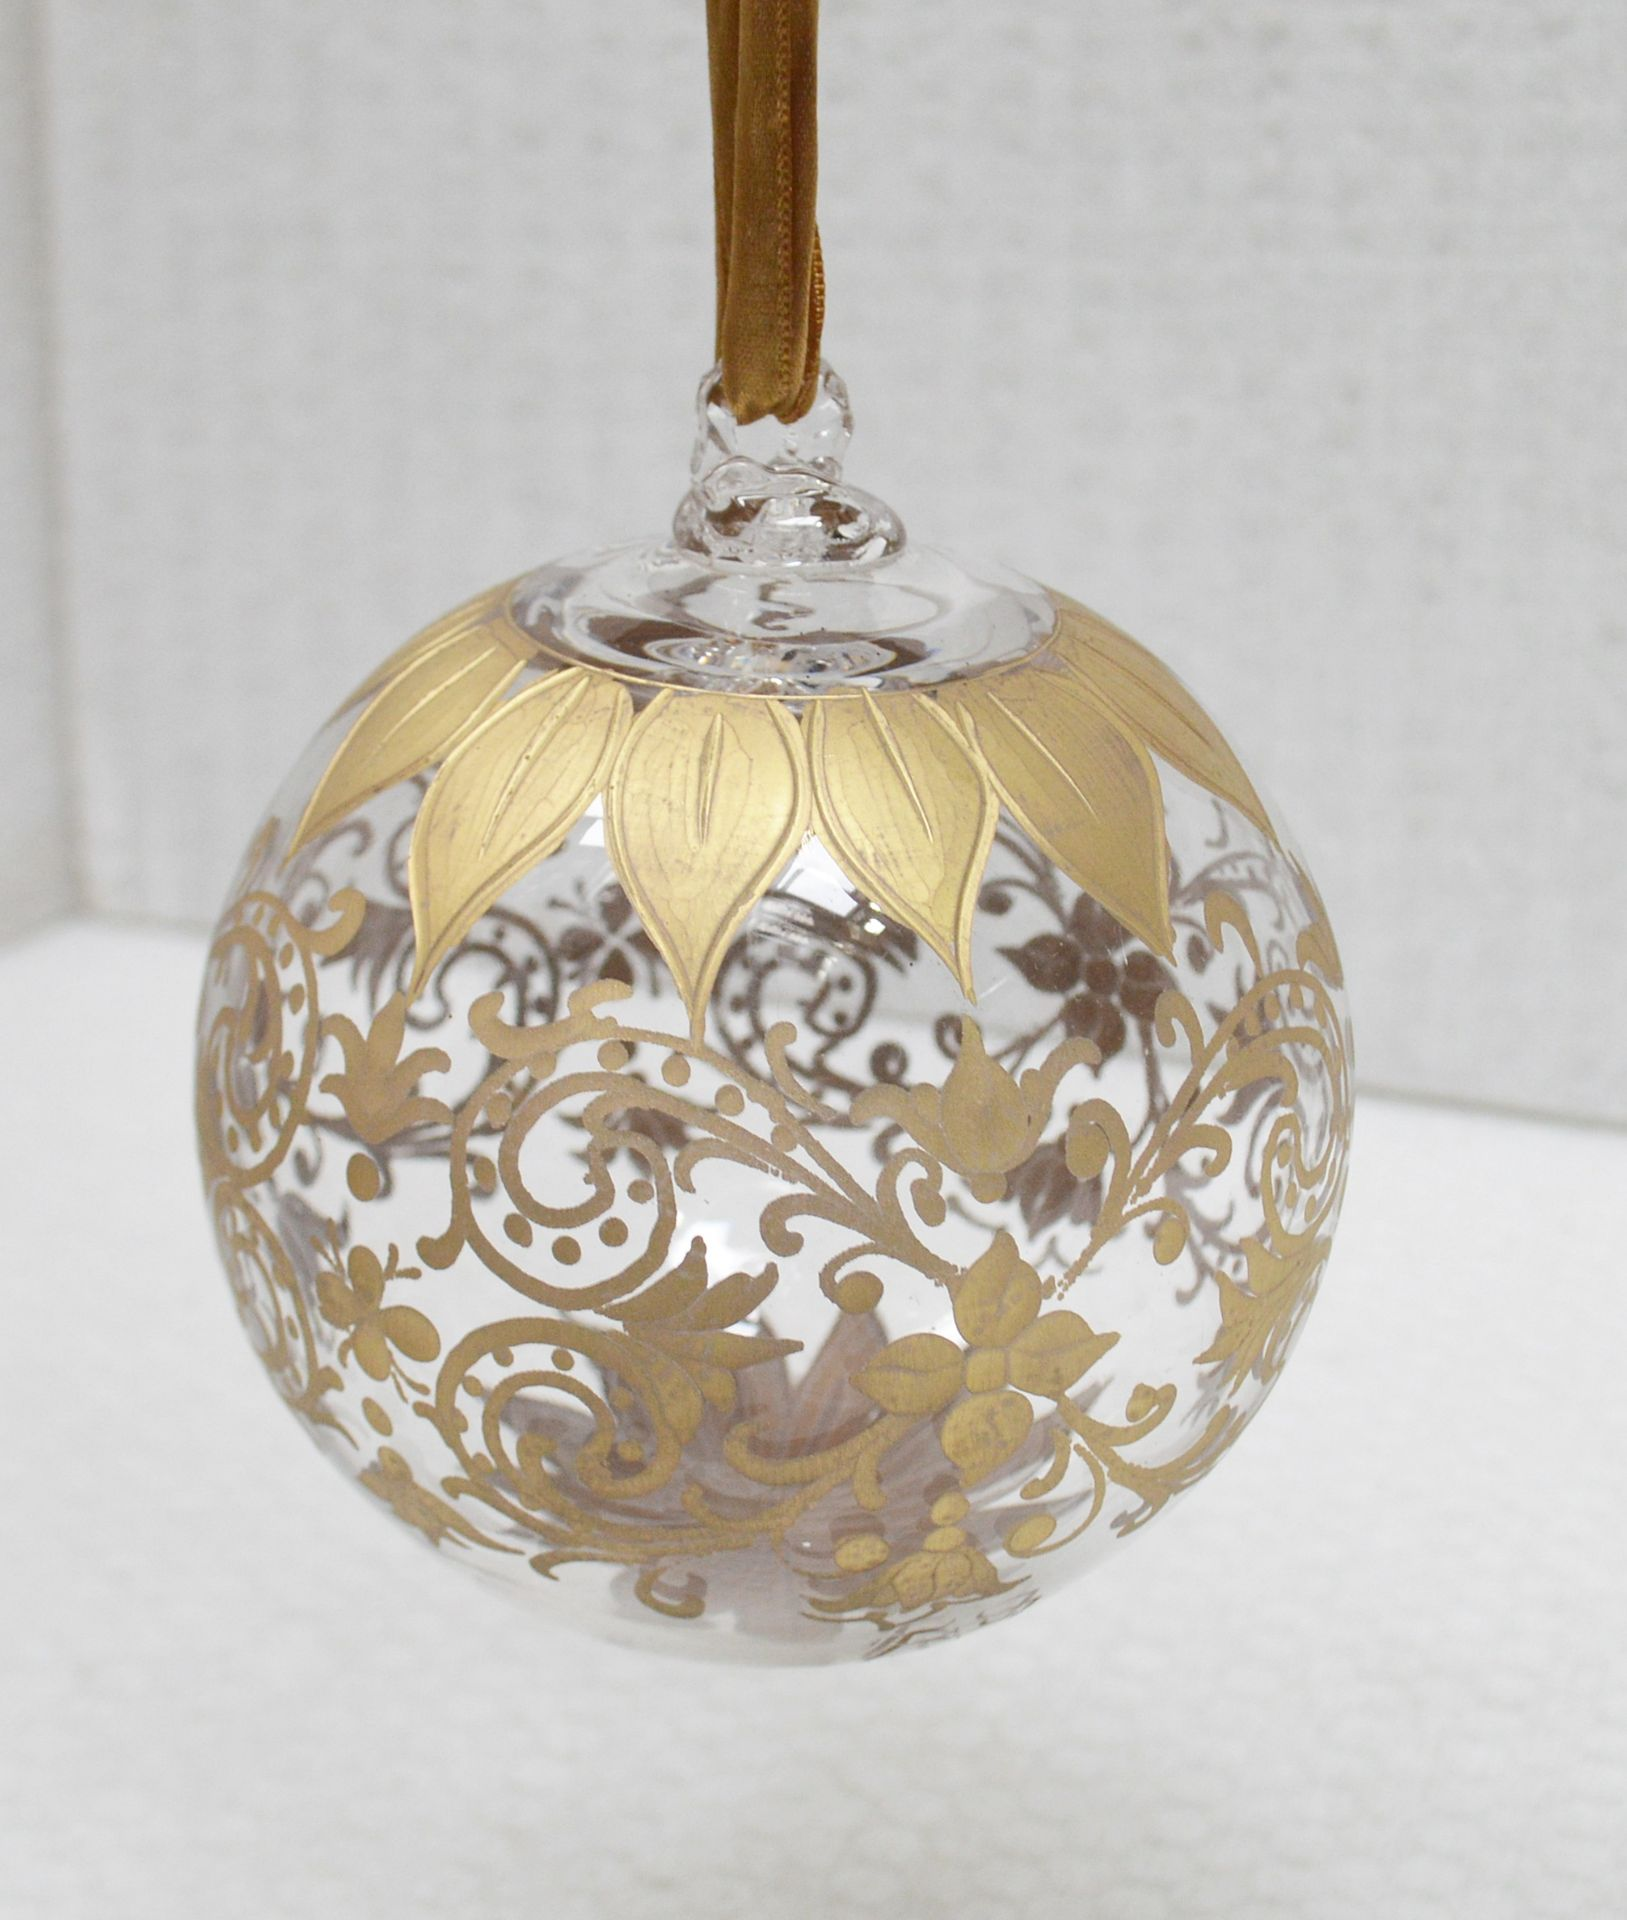 1 x BALDI 'Home Jewels' Italian Hand-crafted Artisan Christmas Tree Decoration In Gold - RRP £124.00